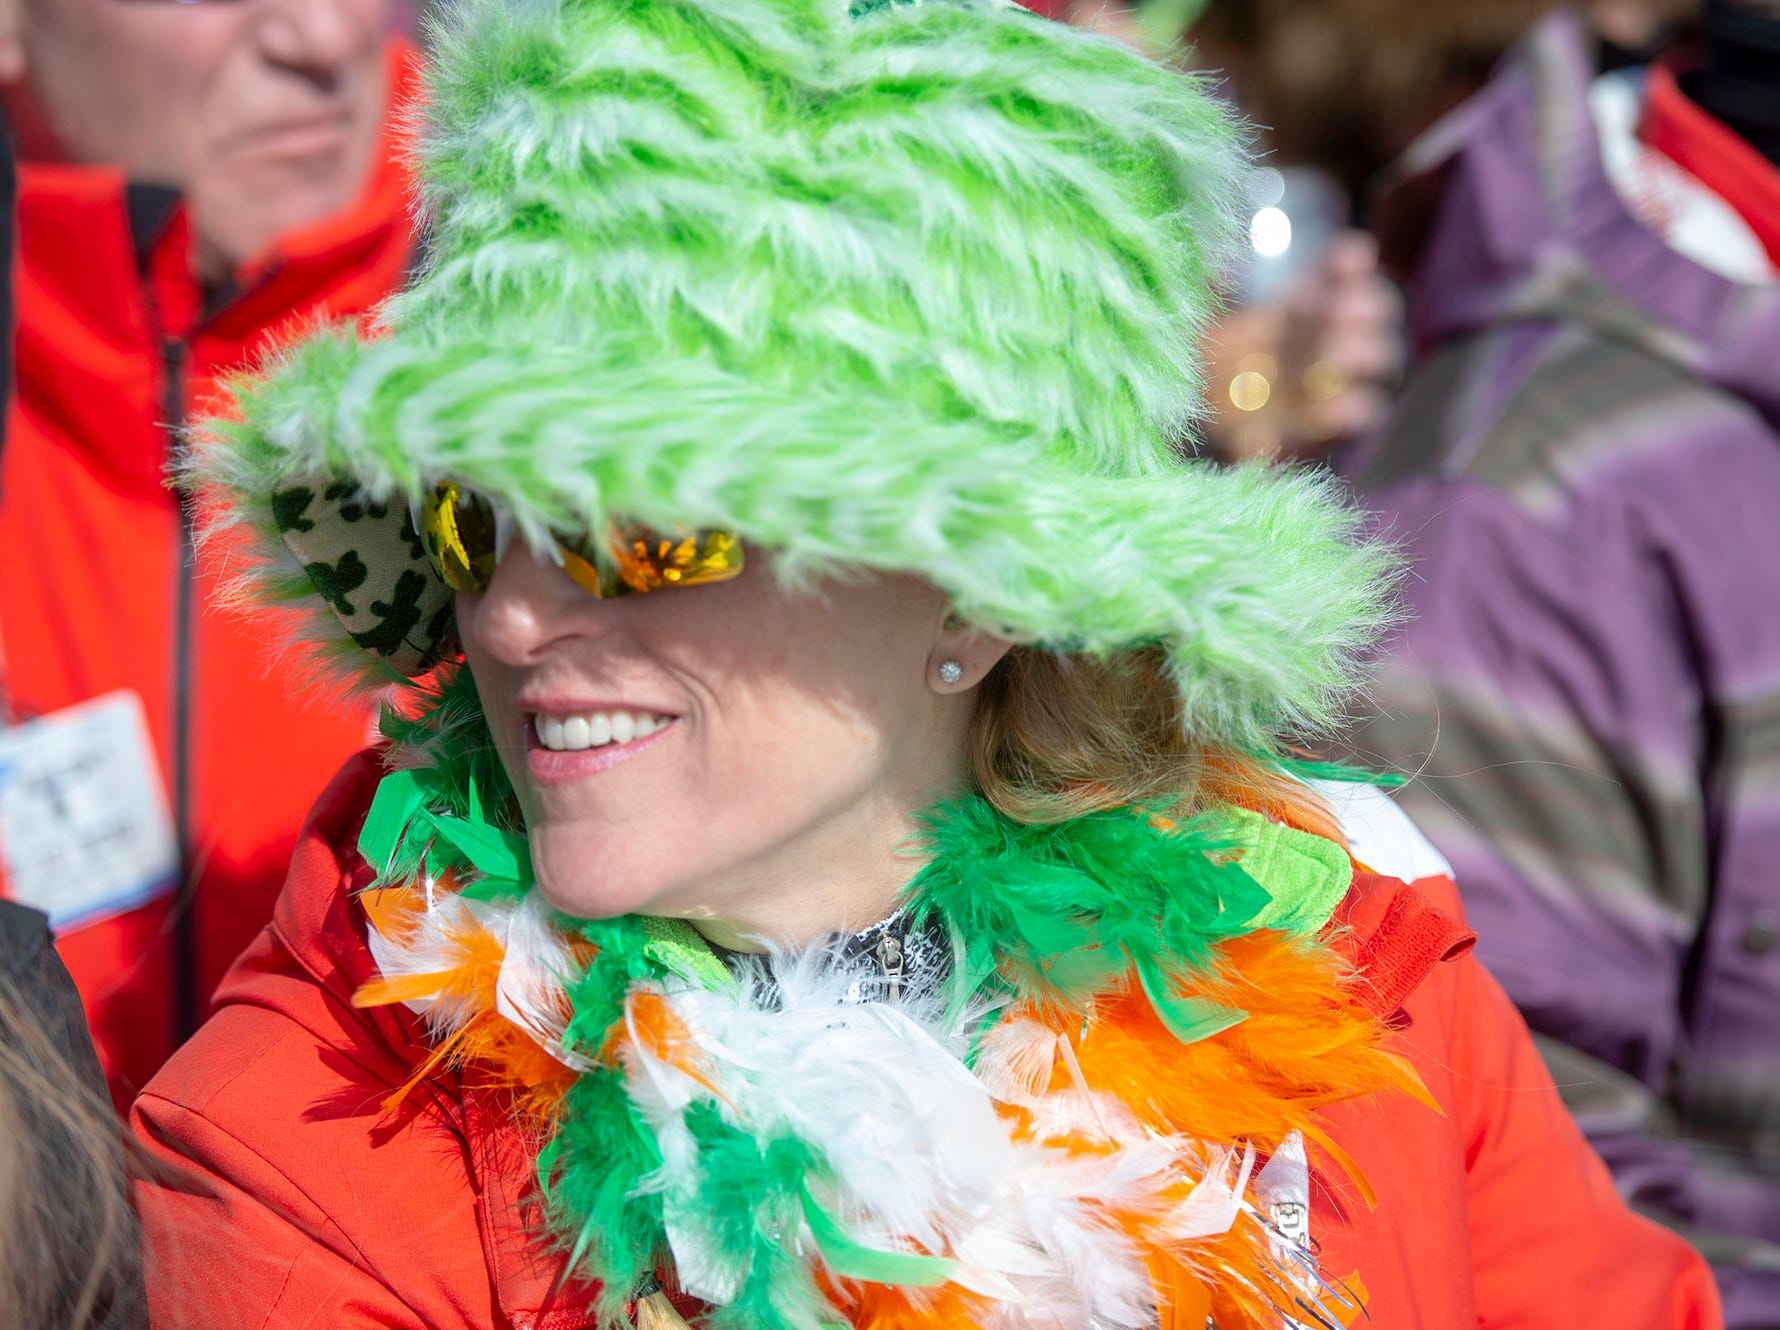 Rebecca Hornung of Linglestown dressed for warmth and St. Patrick's Day as she watched pond skimming at Roundtop Mountain Resort on Saturday, March 16, 2019.